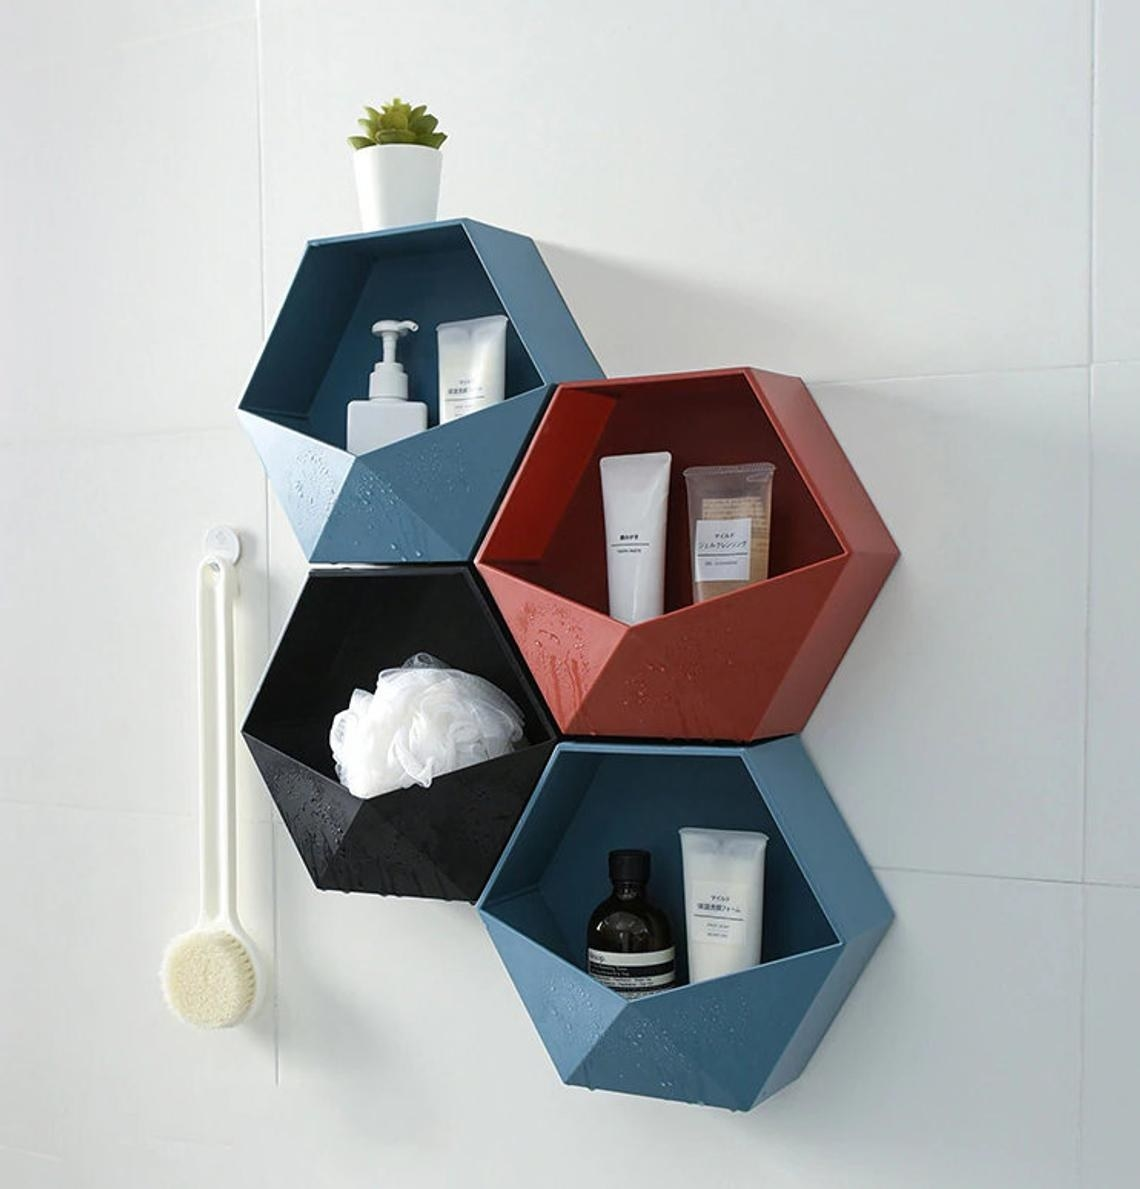 Three of the shelves puzzled together on a shower wall